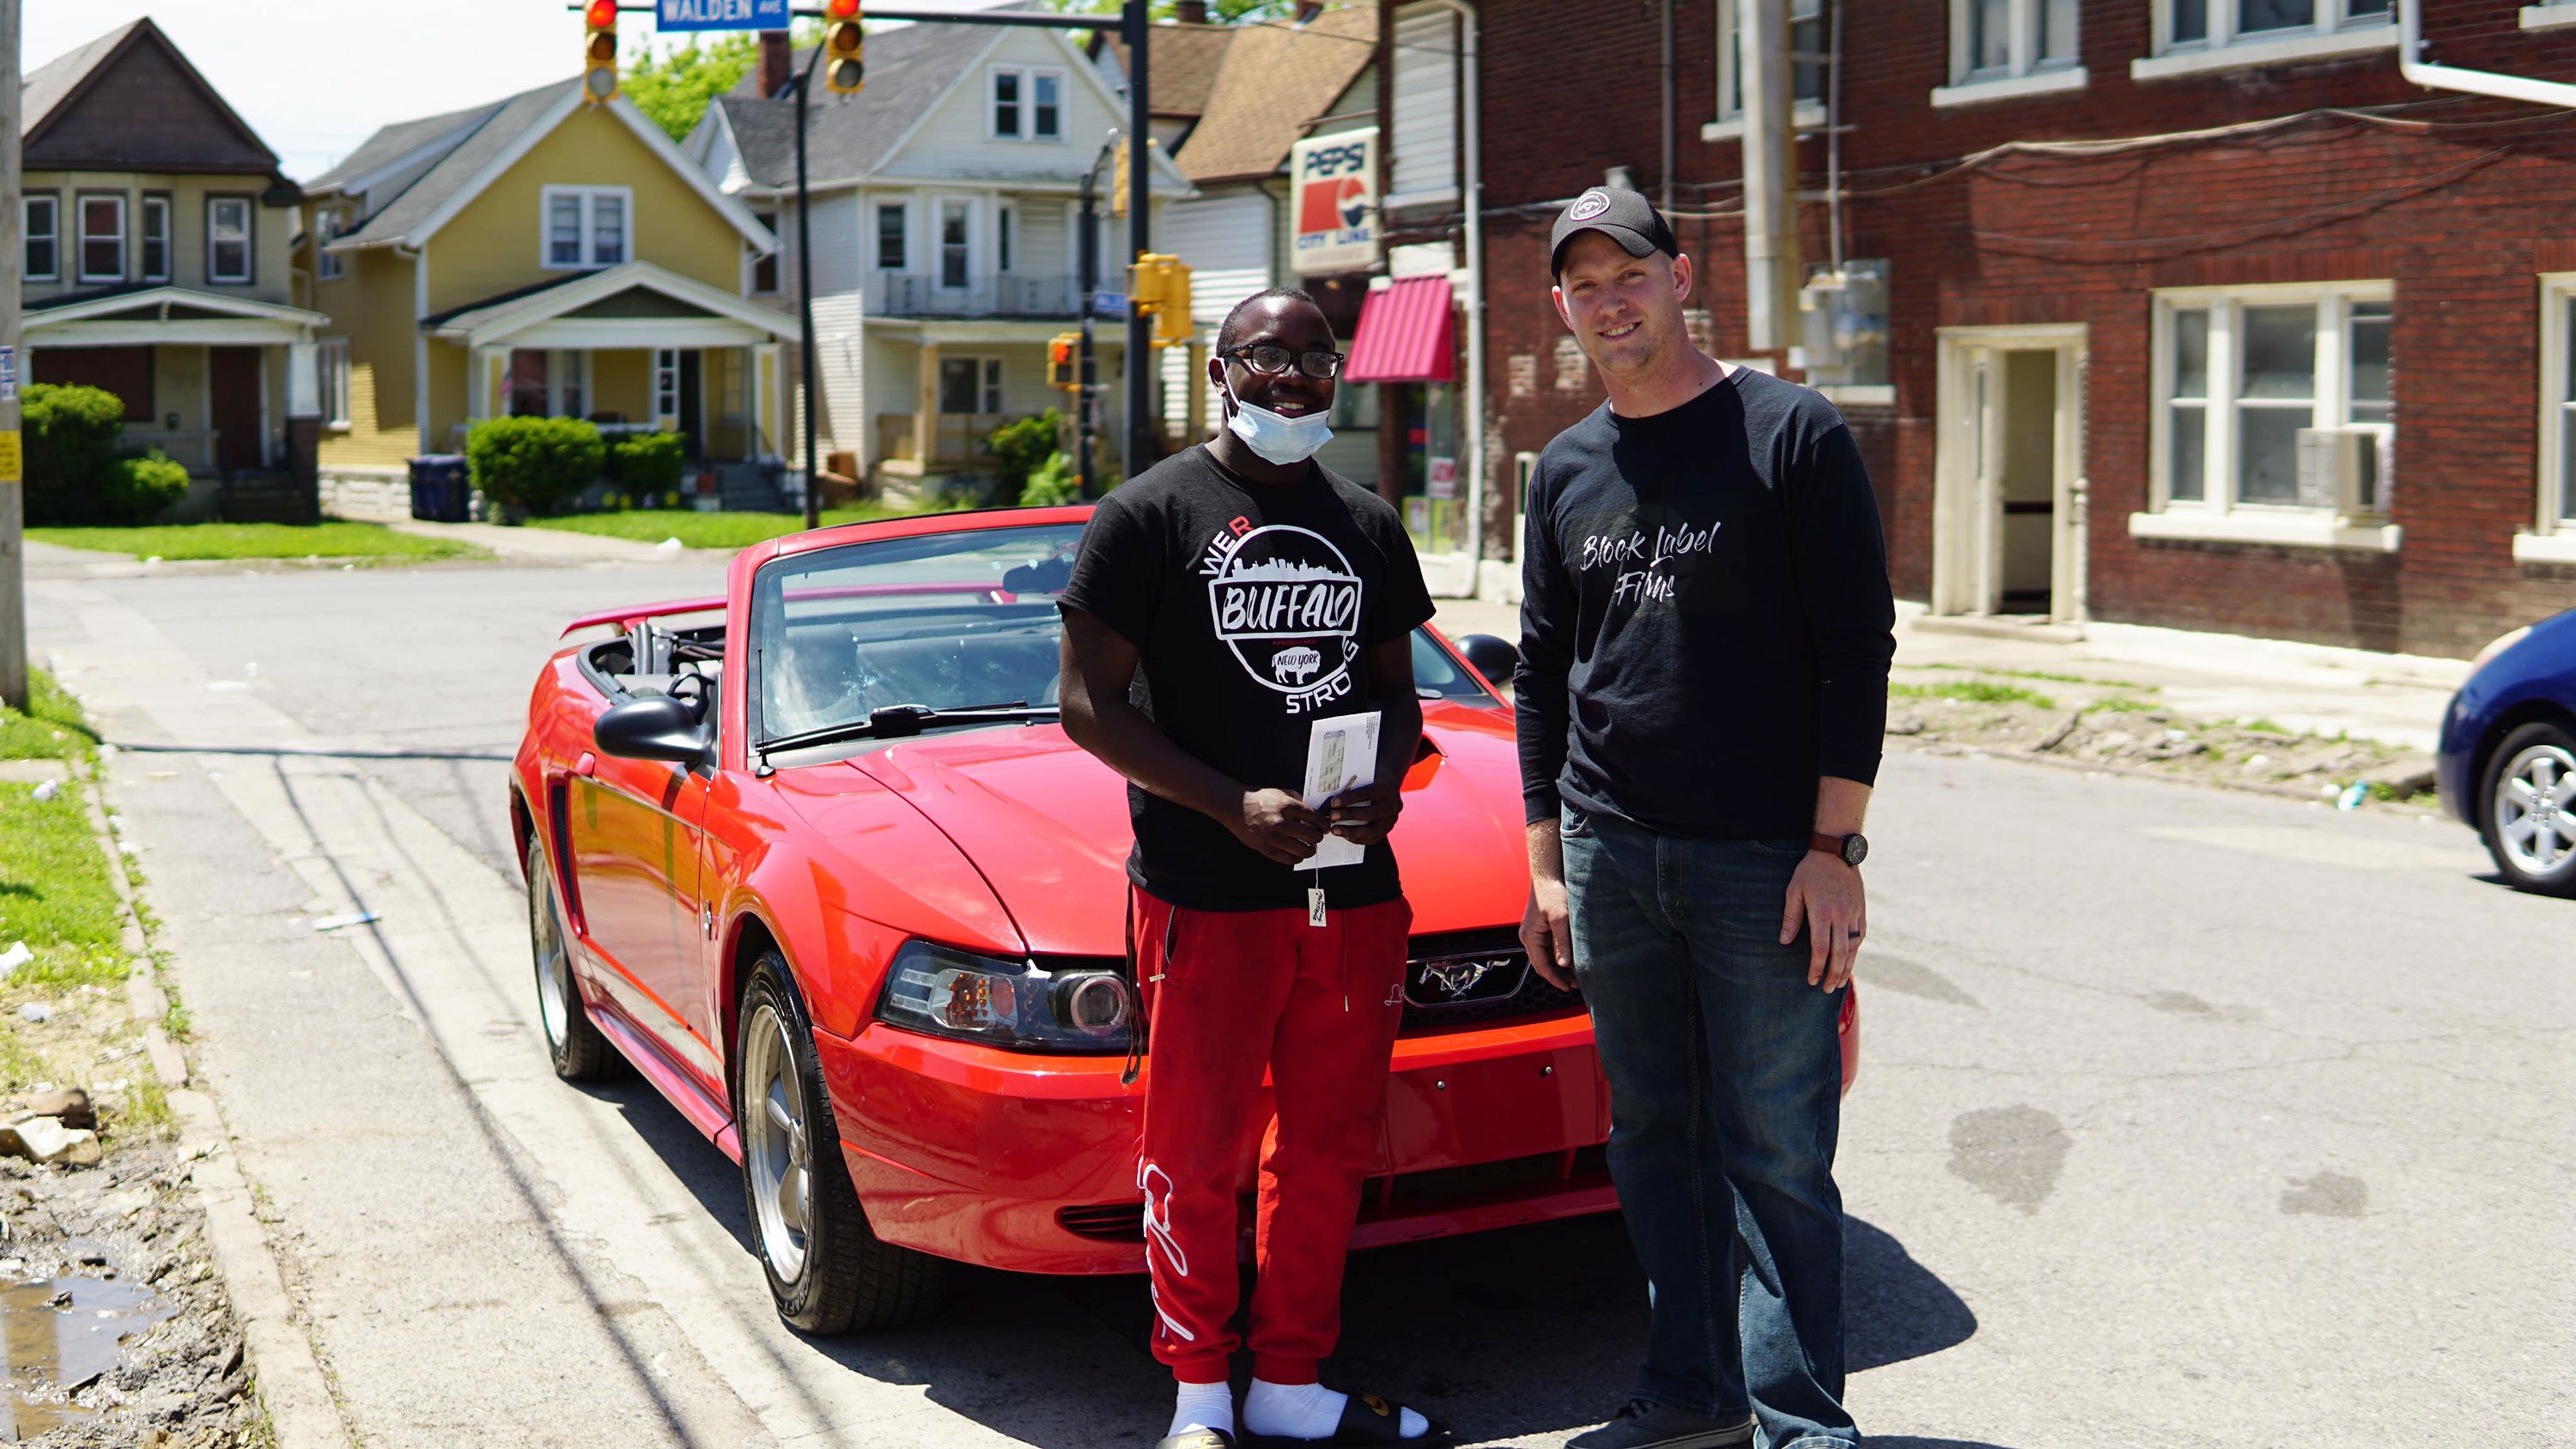 black man and white man standing in front of a red Mustang convertible with its top down